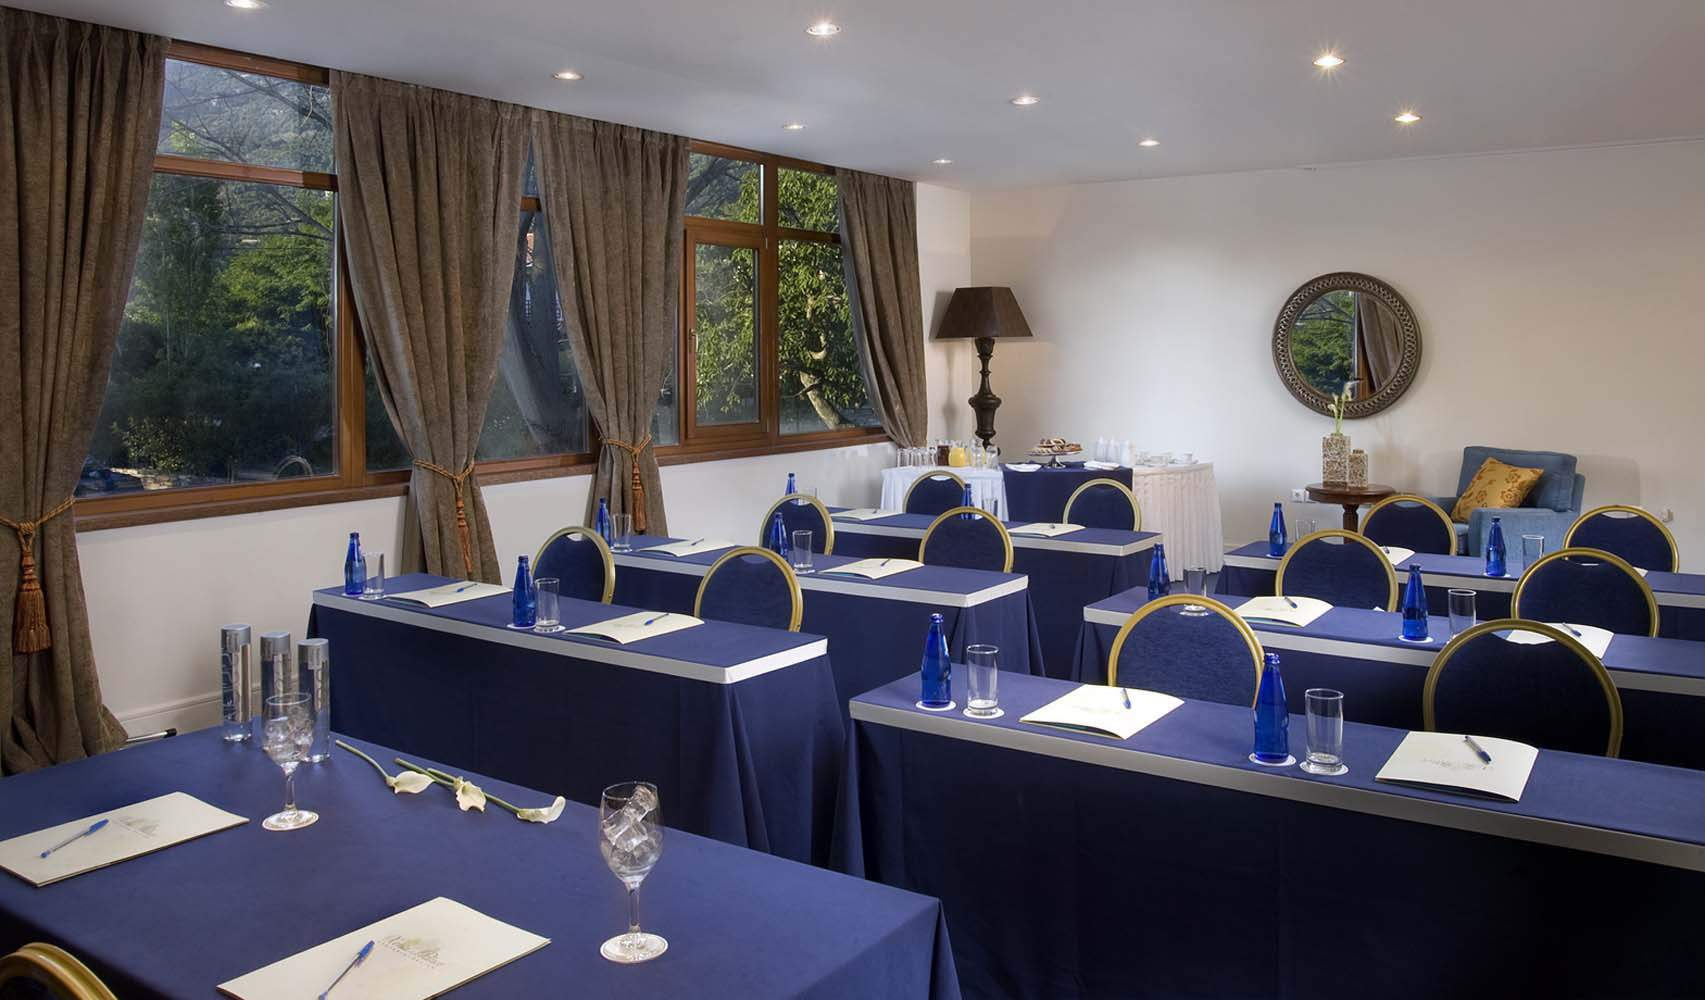 Meetings and Banquet Facilities